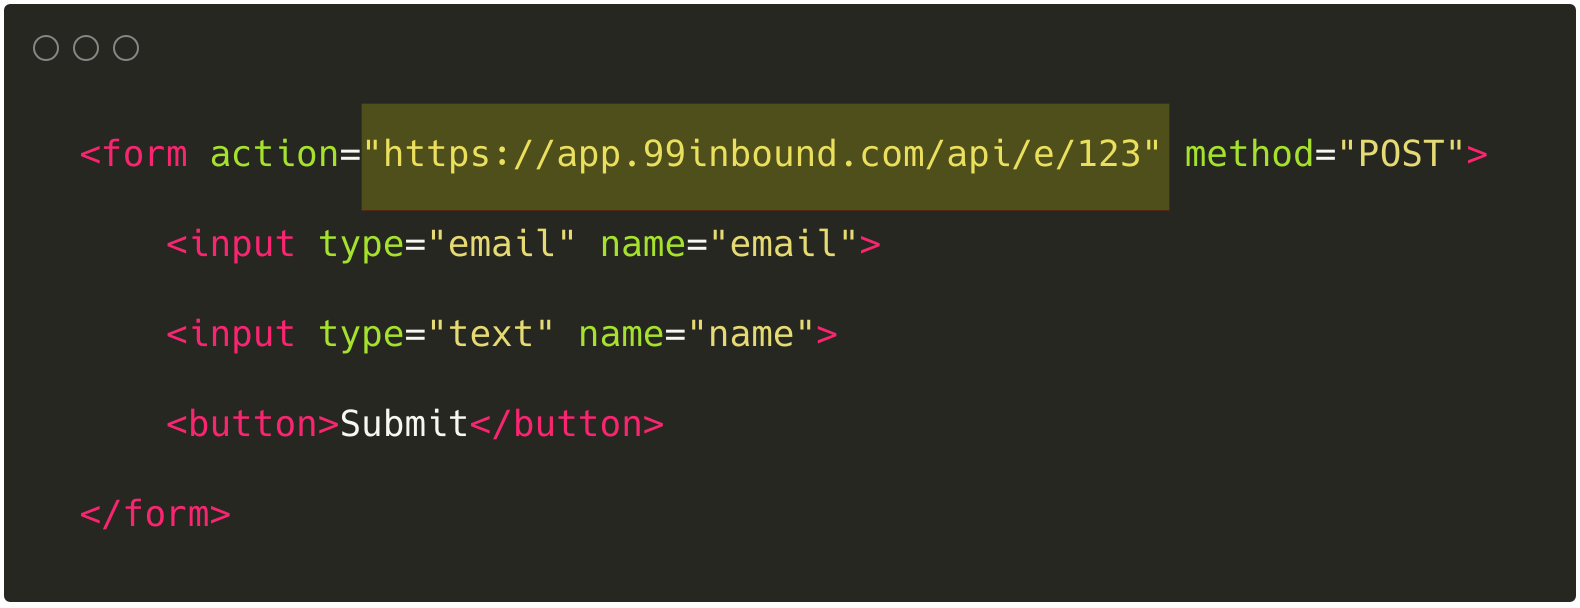 Form Endpoint API embed code